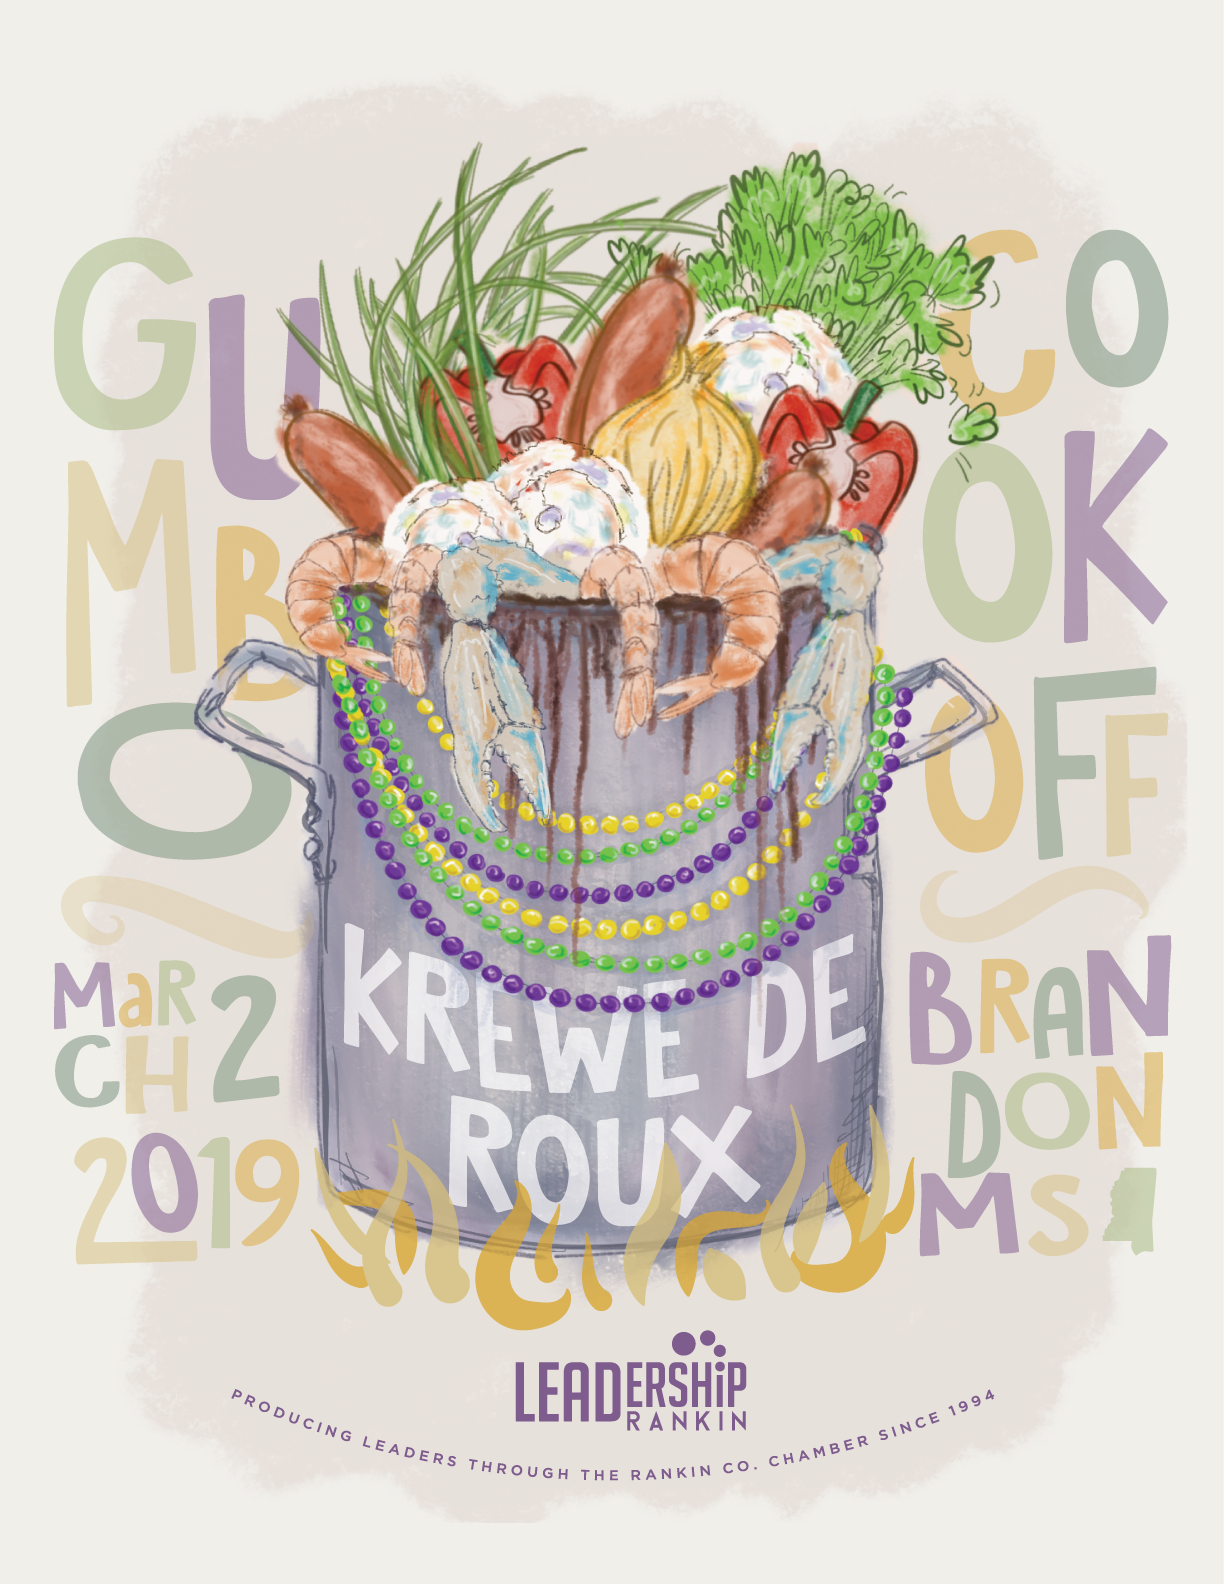 Krewe de Roux Mardi Gras Parade and Block Party and Gumbo Festival